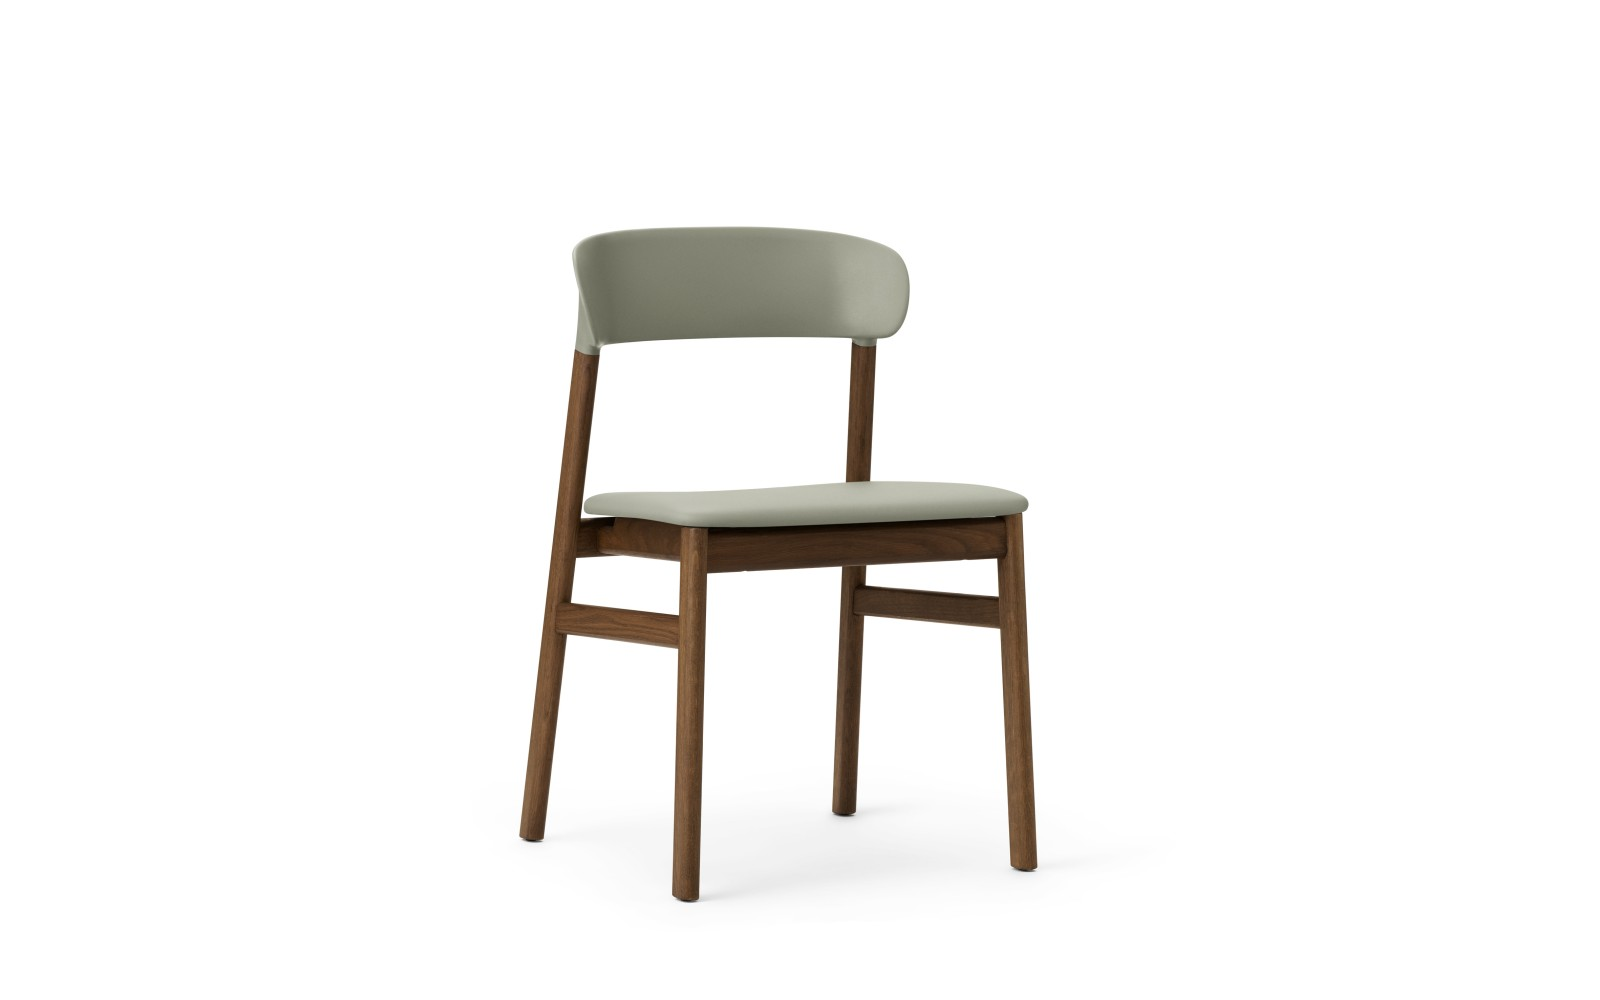 Herit Dining Chair with Upholstered Seat Spectrum Leather Dusty Green, Smoked Oak